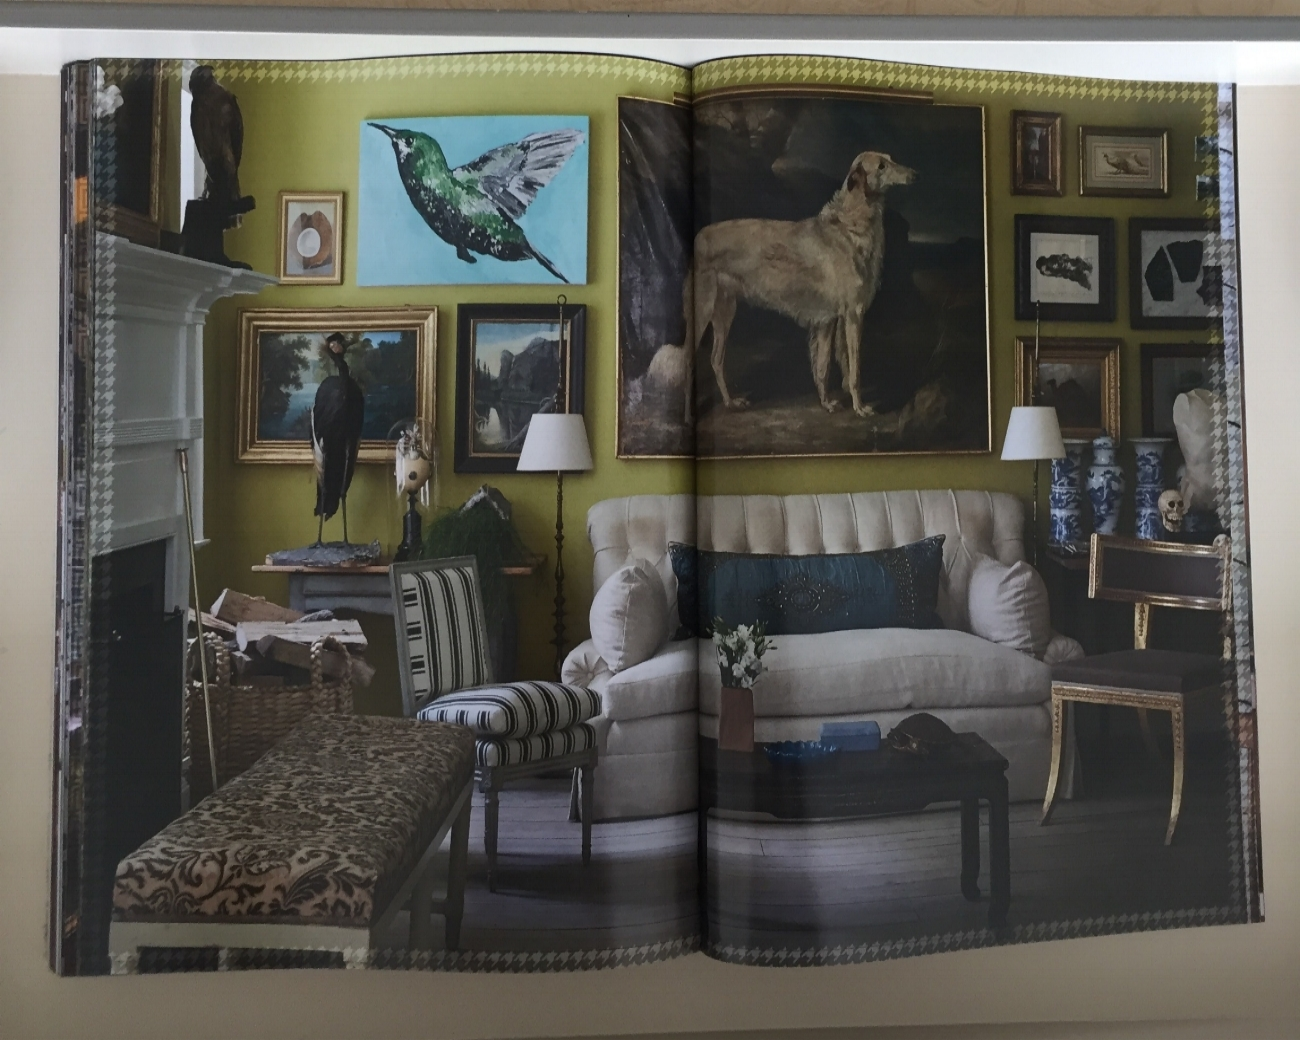 Highly regarded Interior designer Daniel Romualdez shows his recently completed Connecticut country house and his extensive taxidermy collection